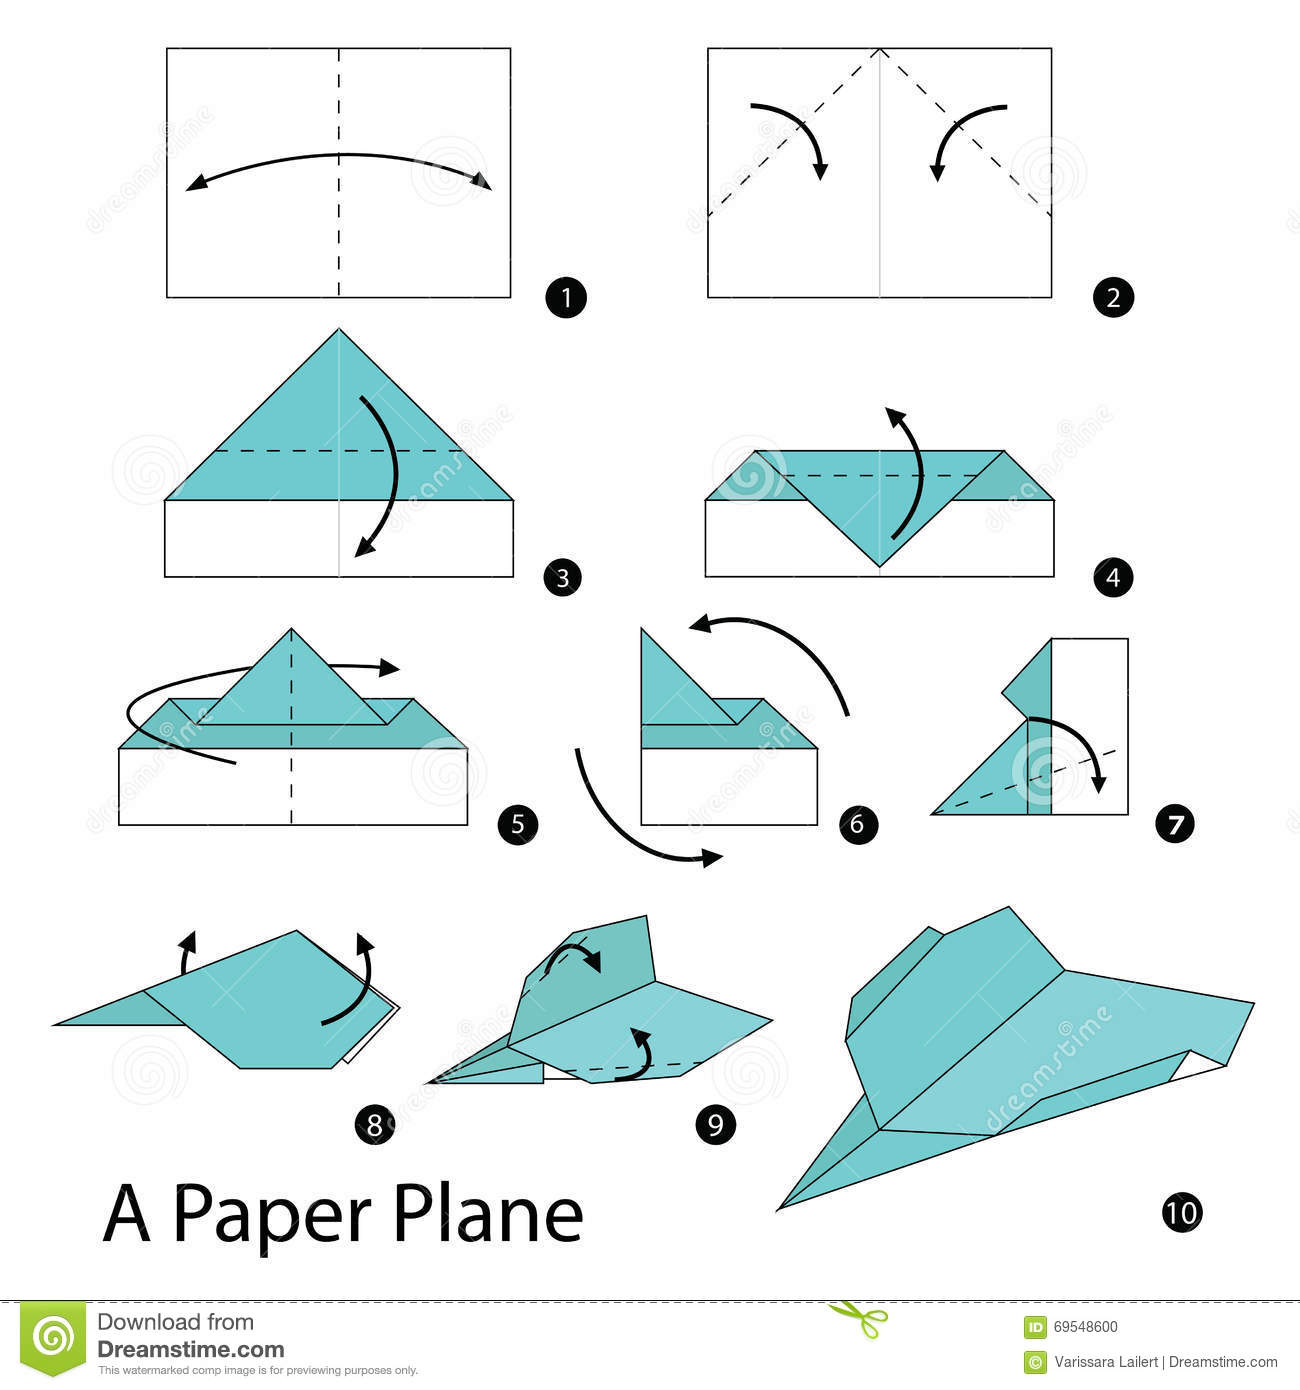 instructions on how to make a paper airplane